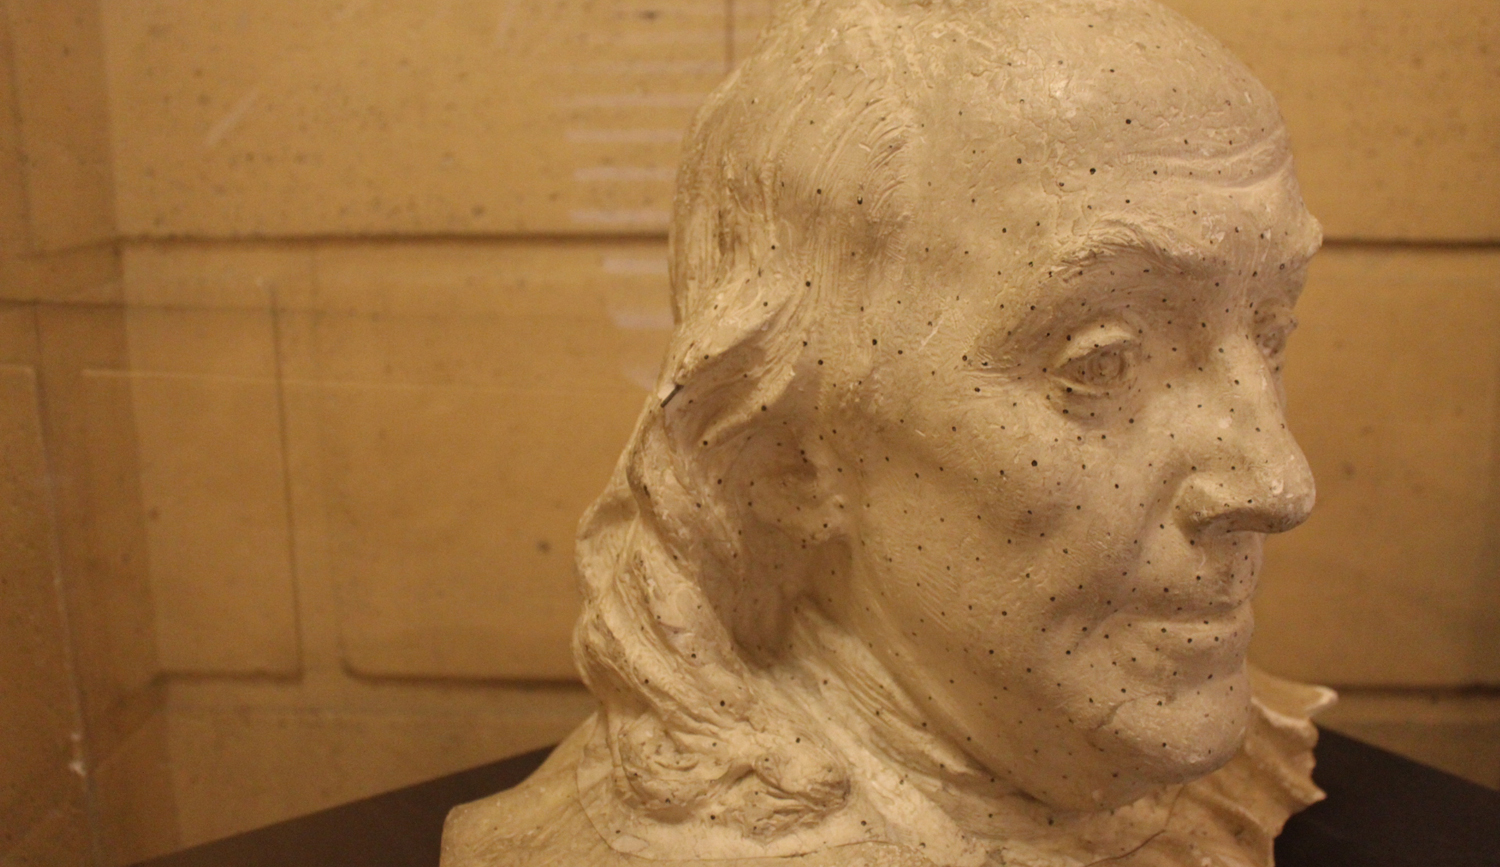 Maquette of the Bust of Franklin